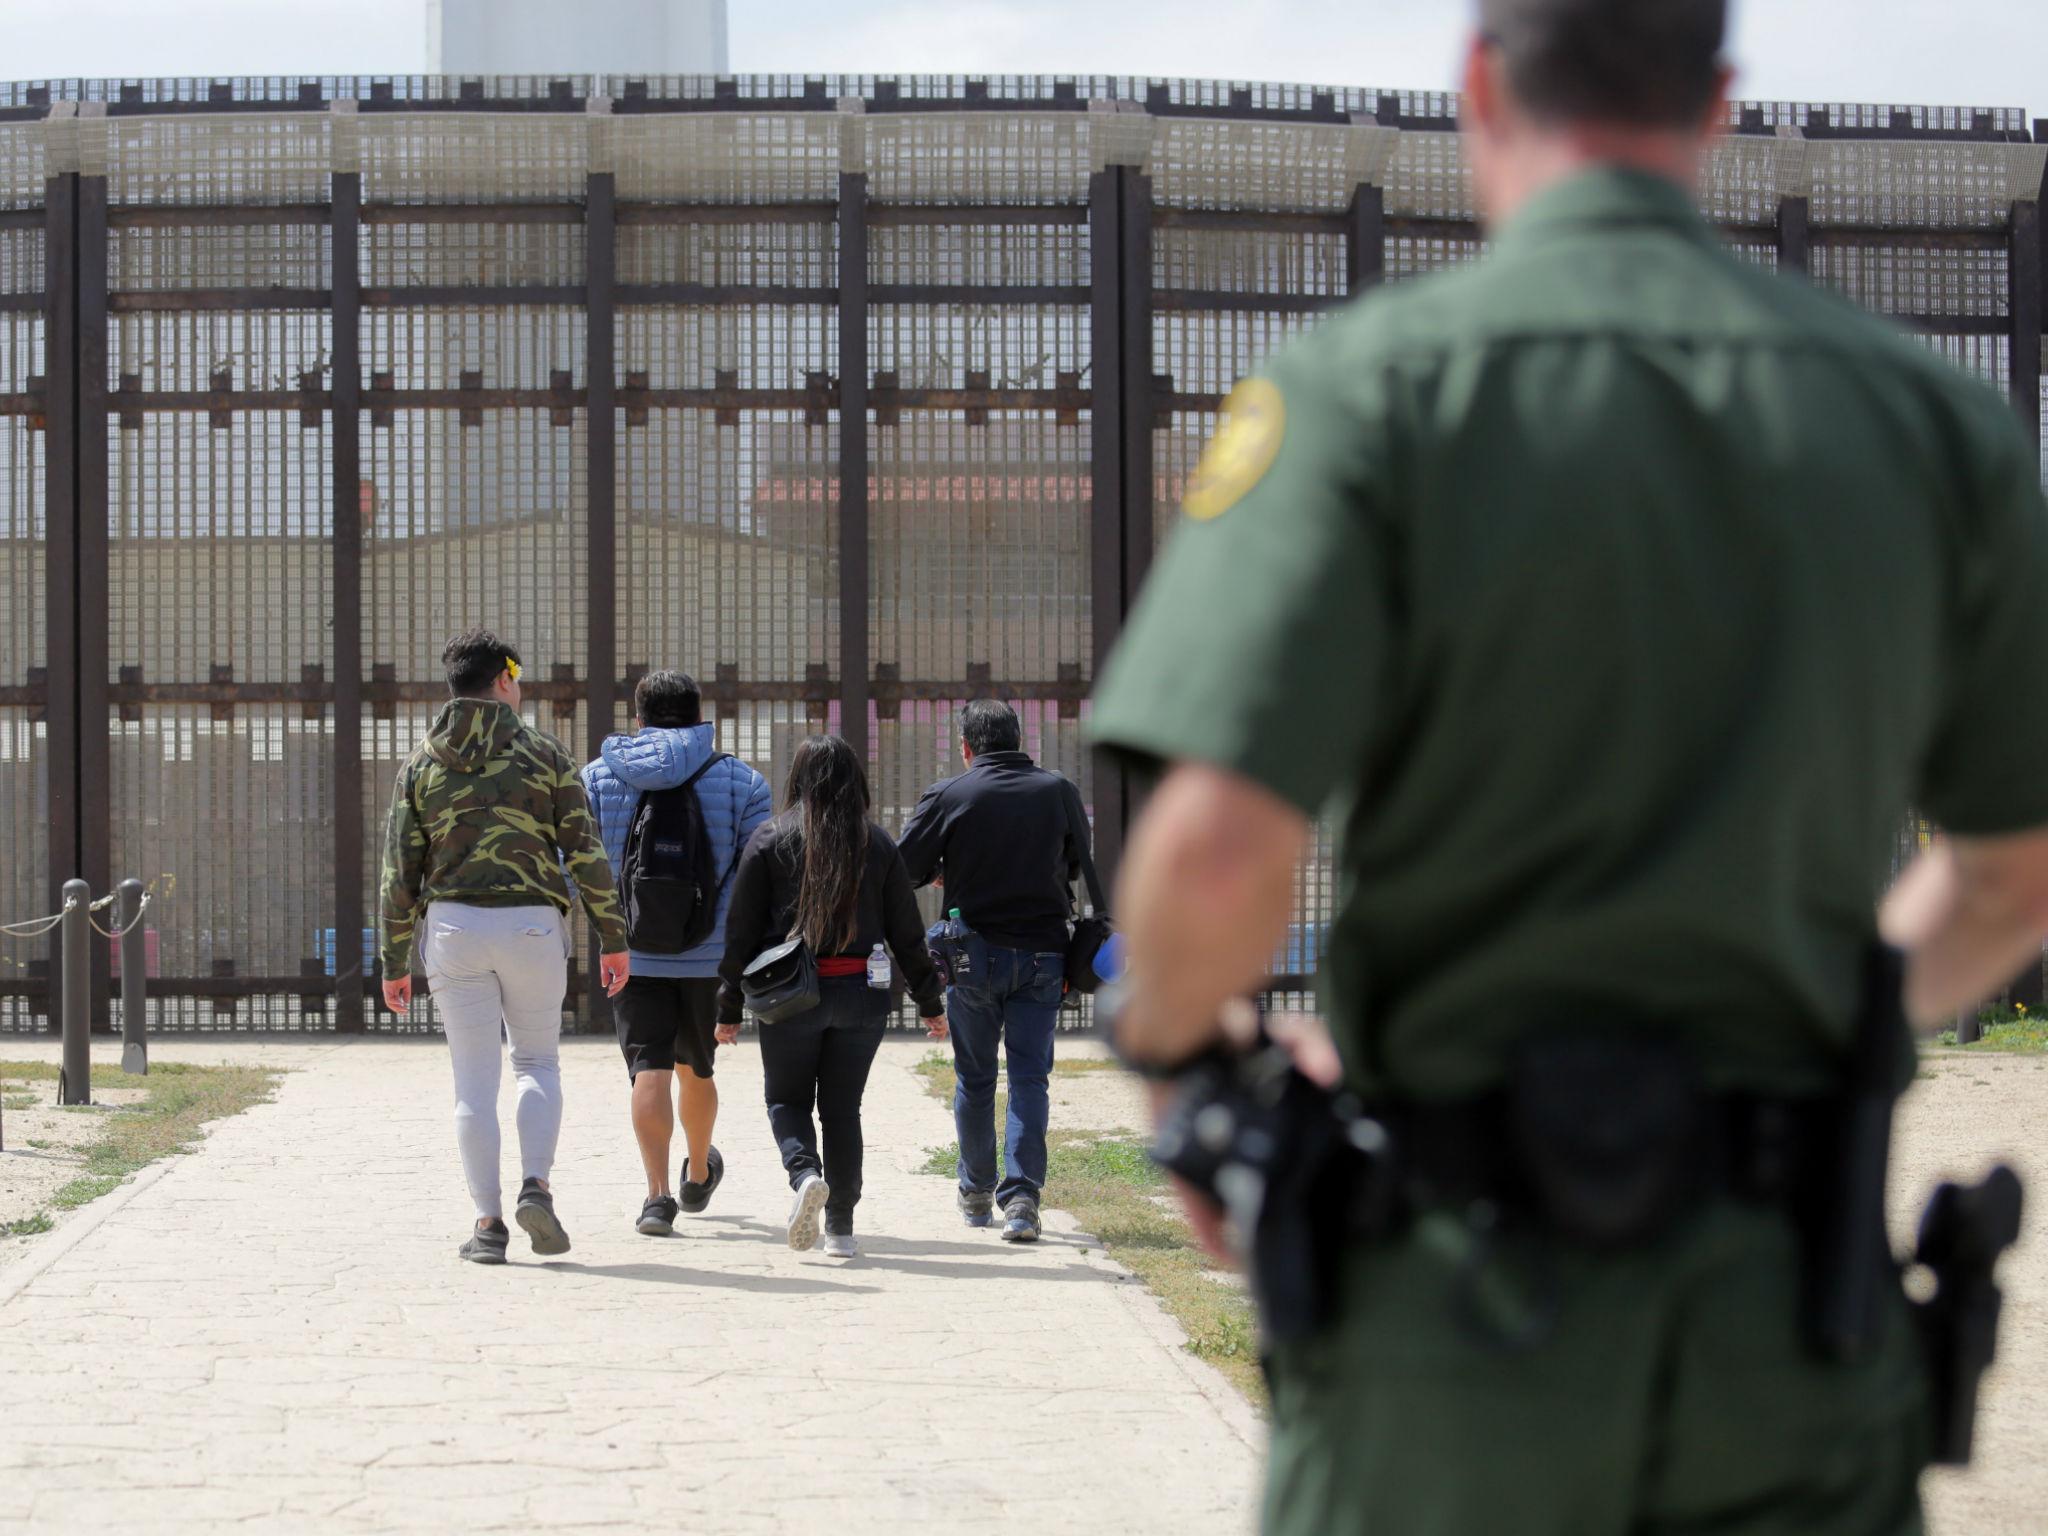 Startling increase in physical and sexual abuse of child immigrants by US Border Patrol, new report alleges